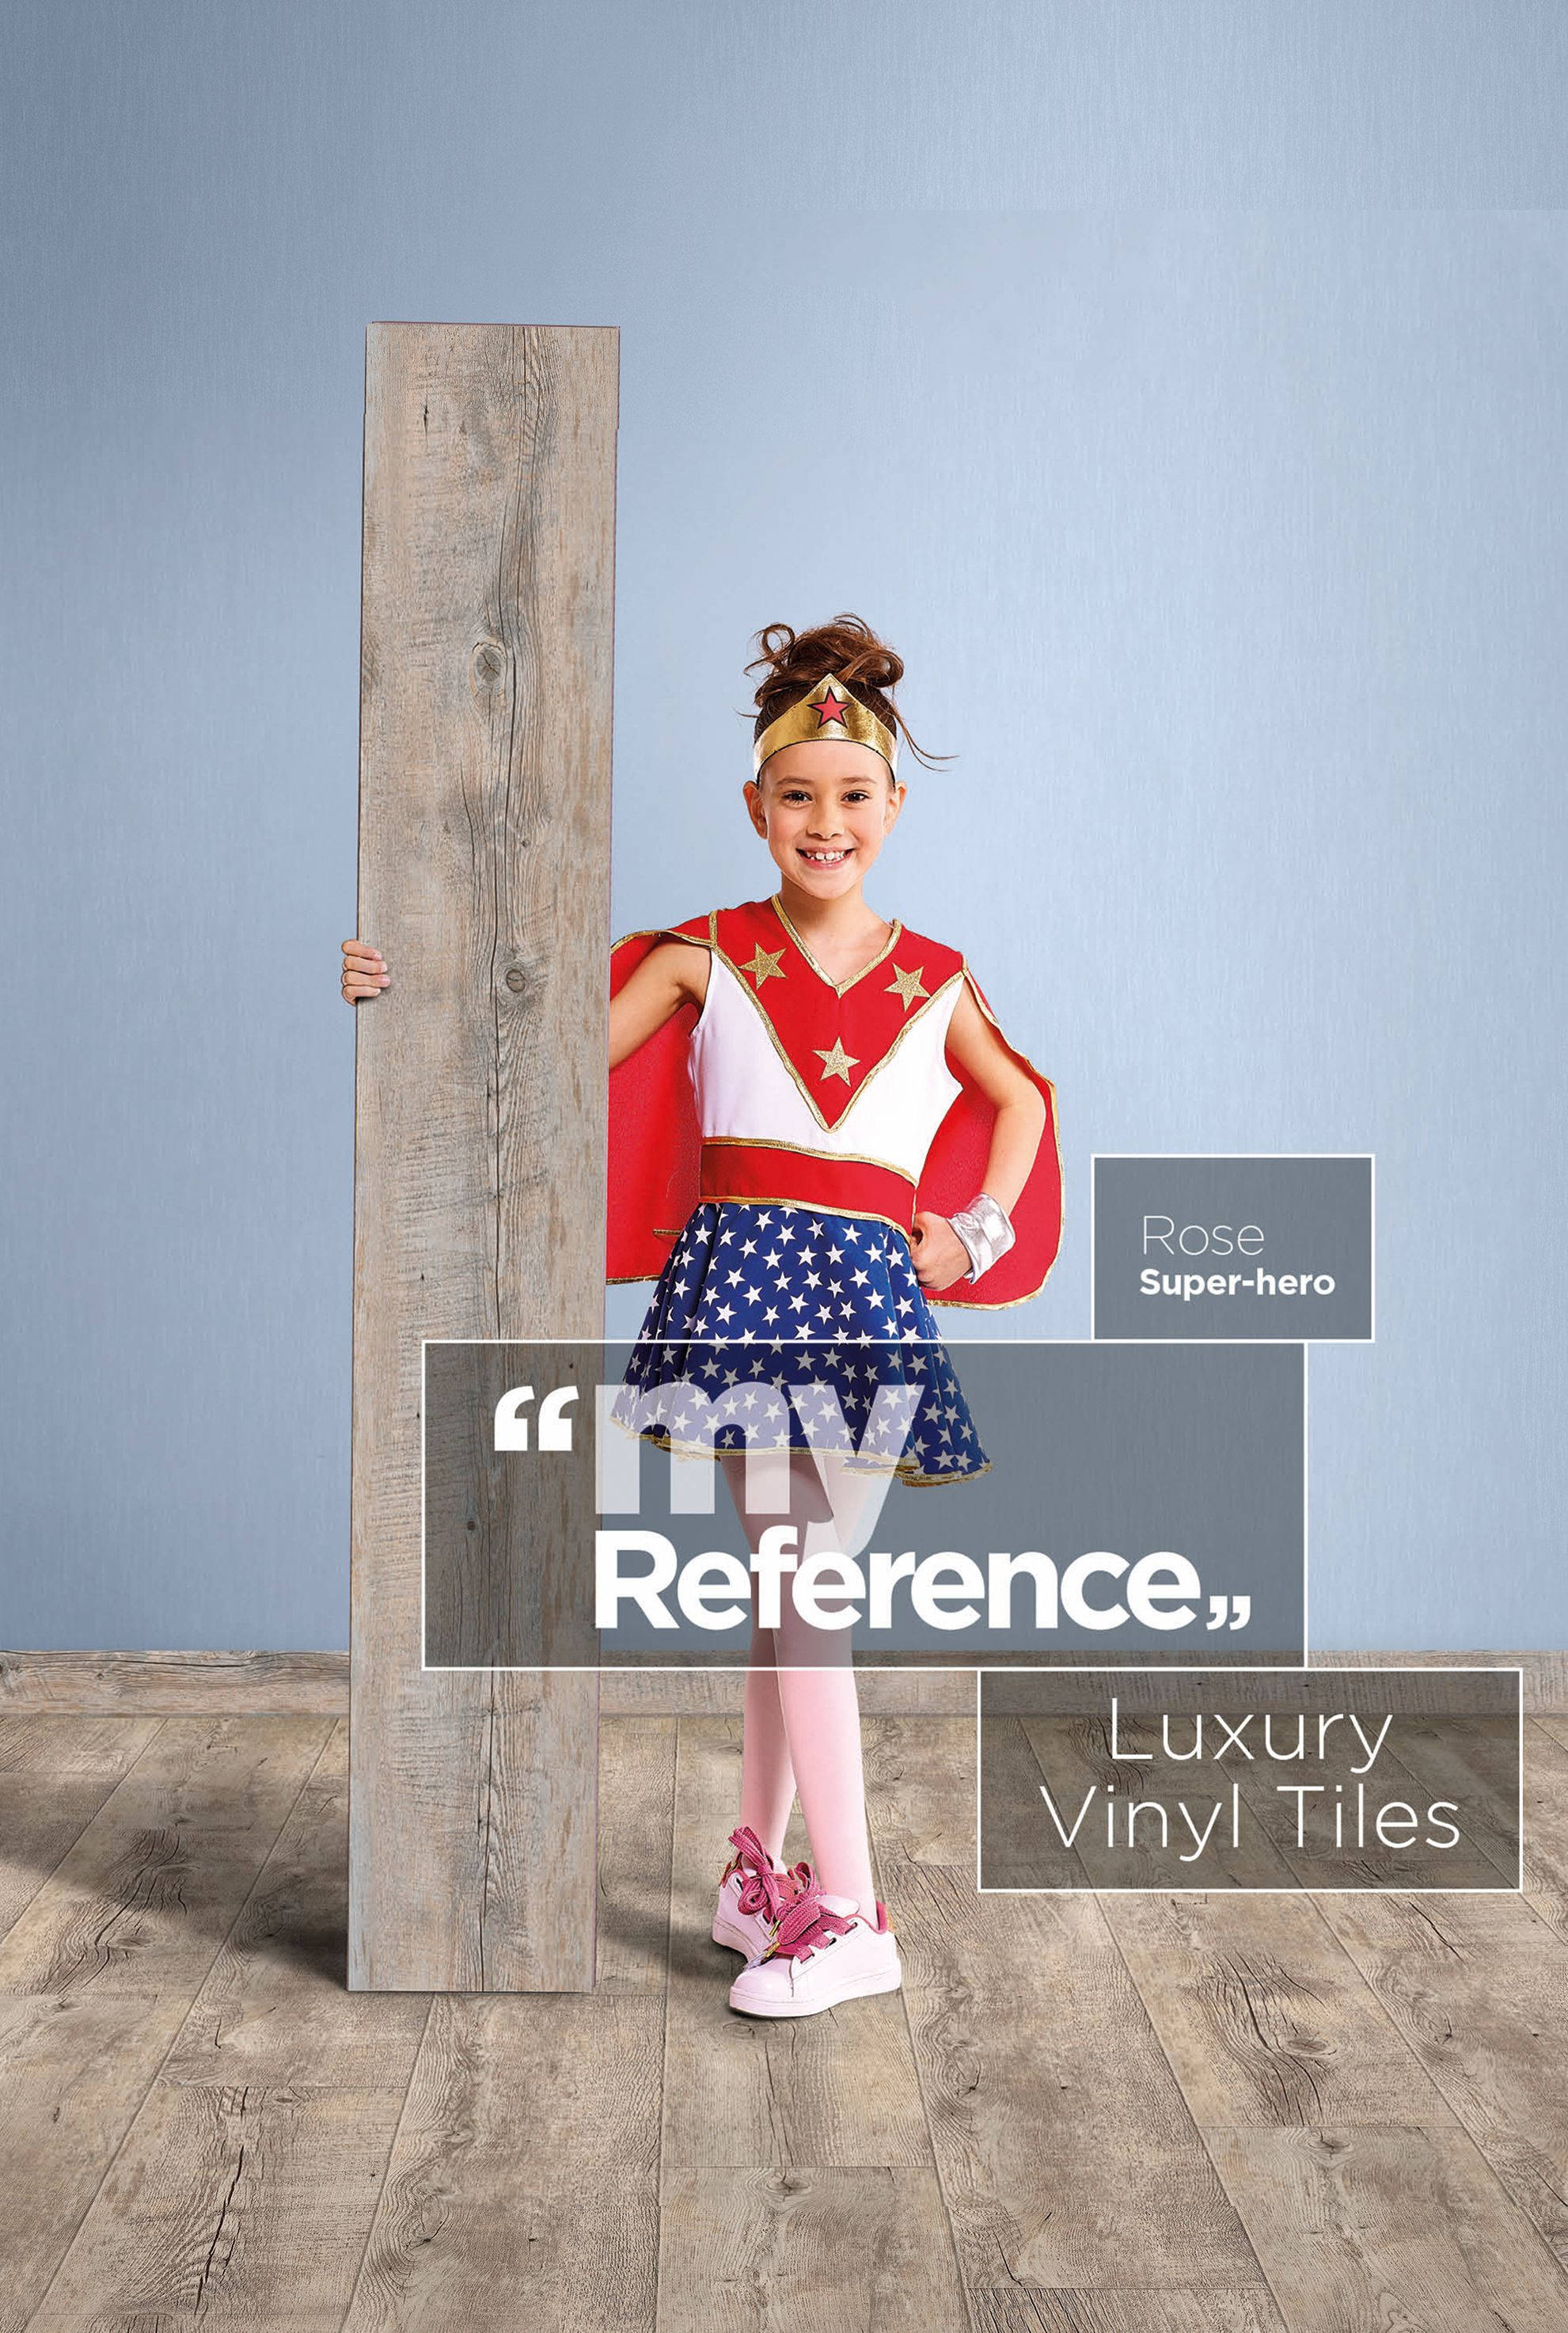 You don't have to be a superhero to benefit from the creative designs and textures of our Luxury Vinyl Flooring!  This is Rose's reference, what's yours? #MyReference